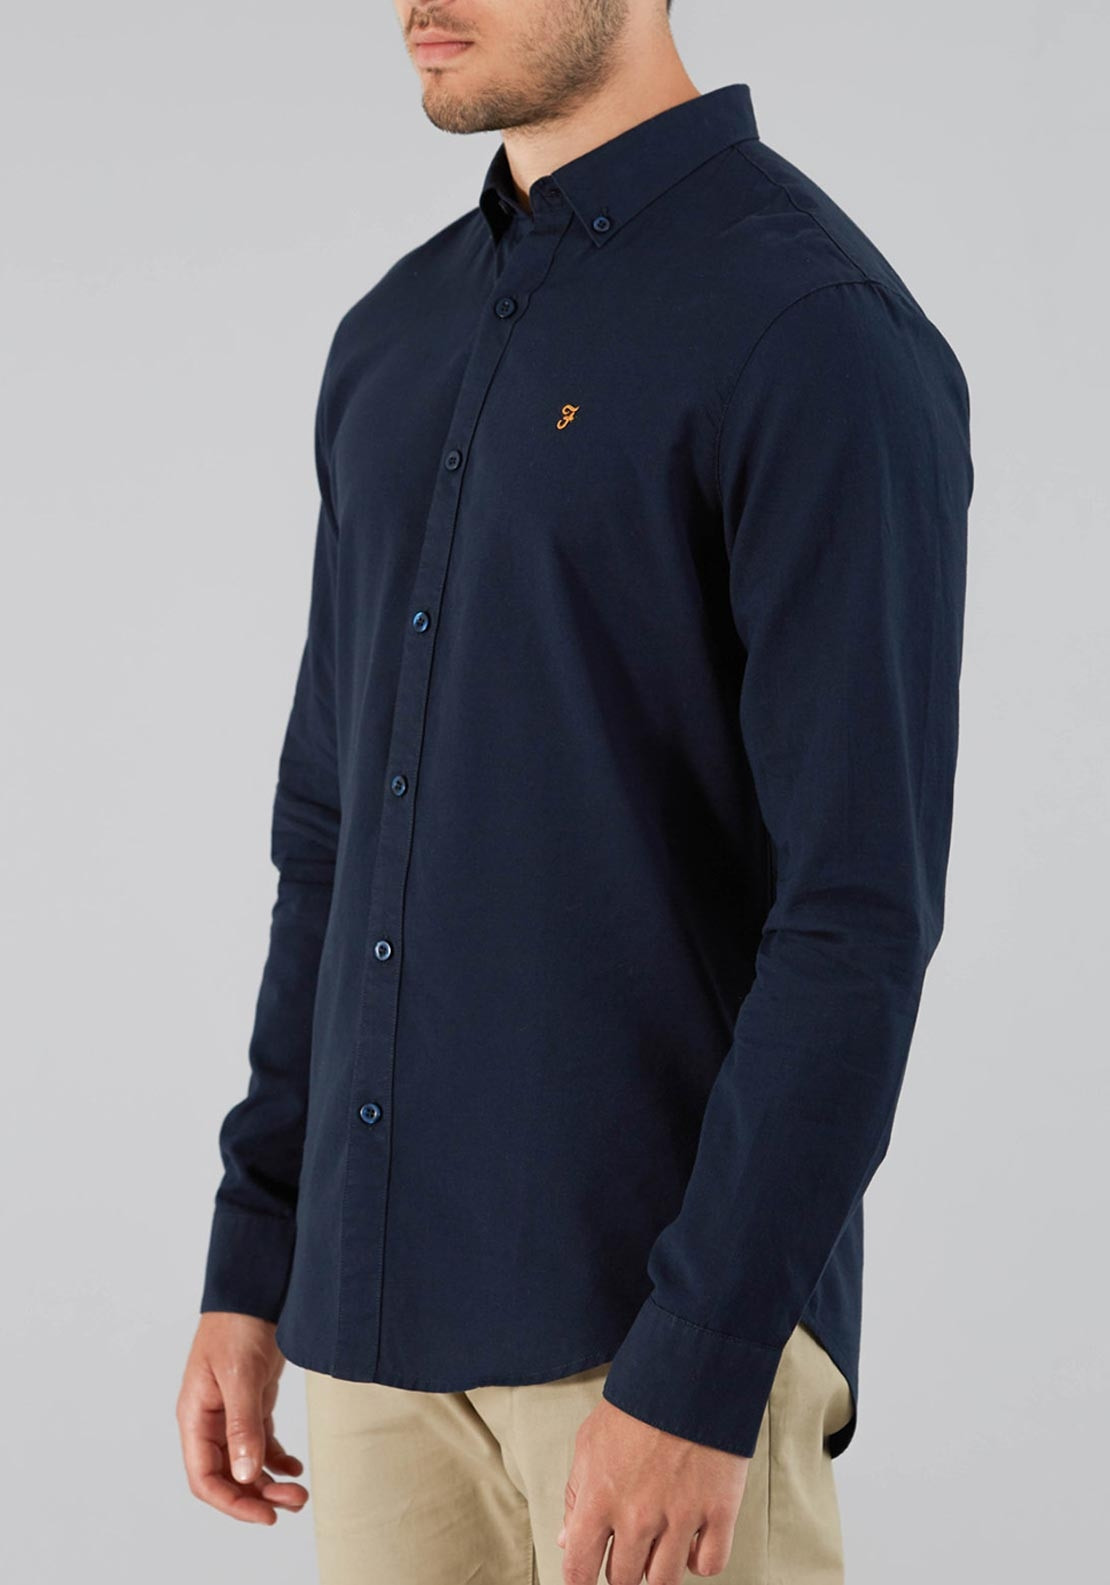 Farah Vintage Leon Slim Fit Shirt, Navy